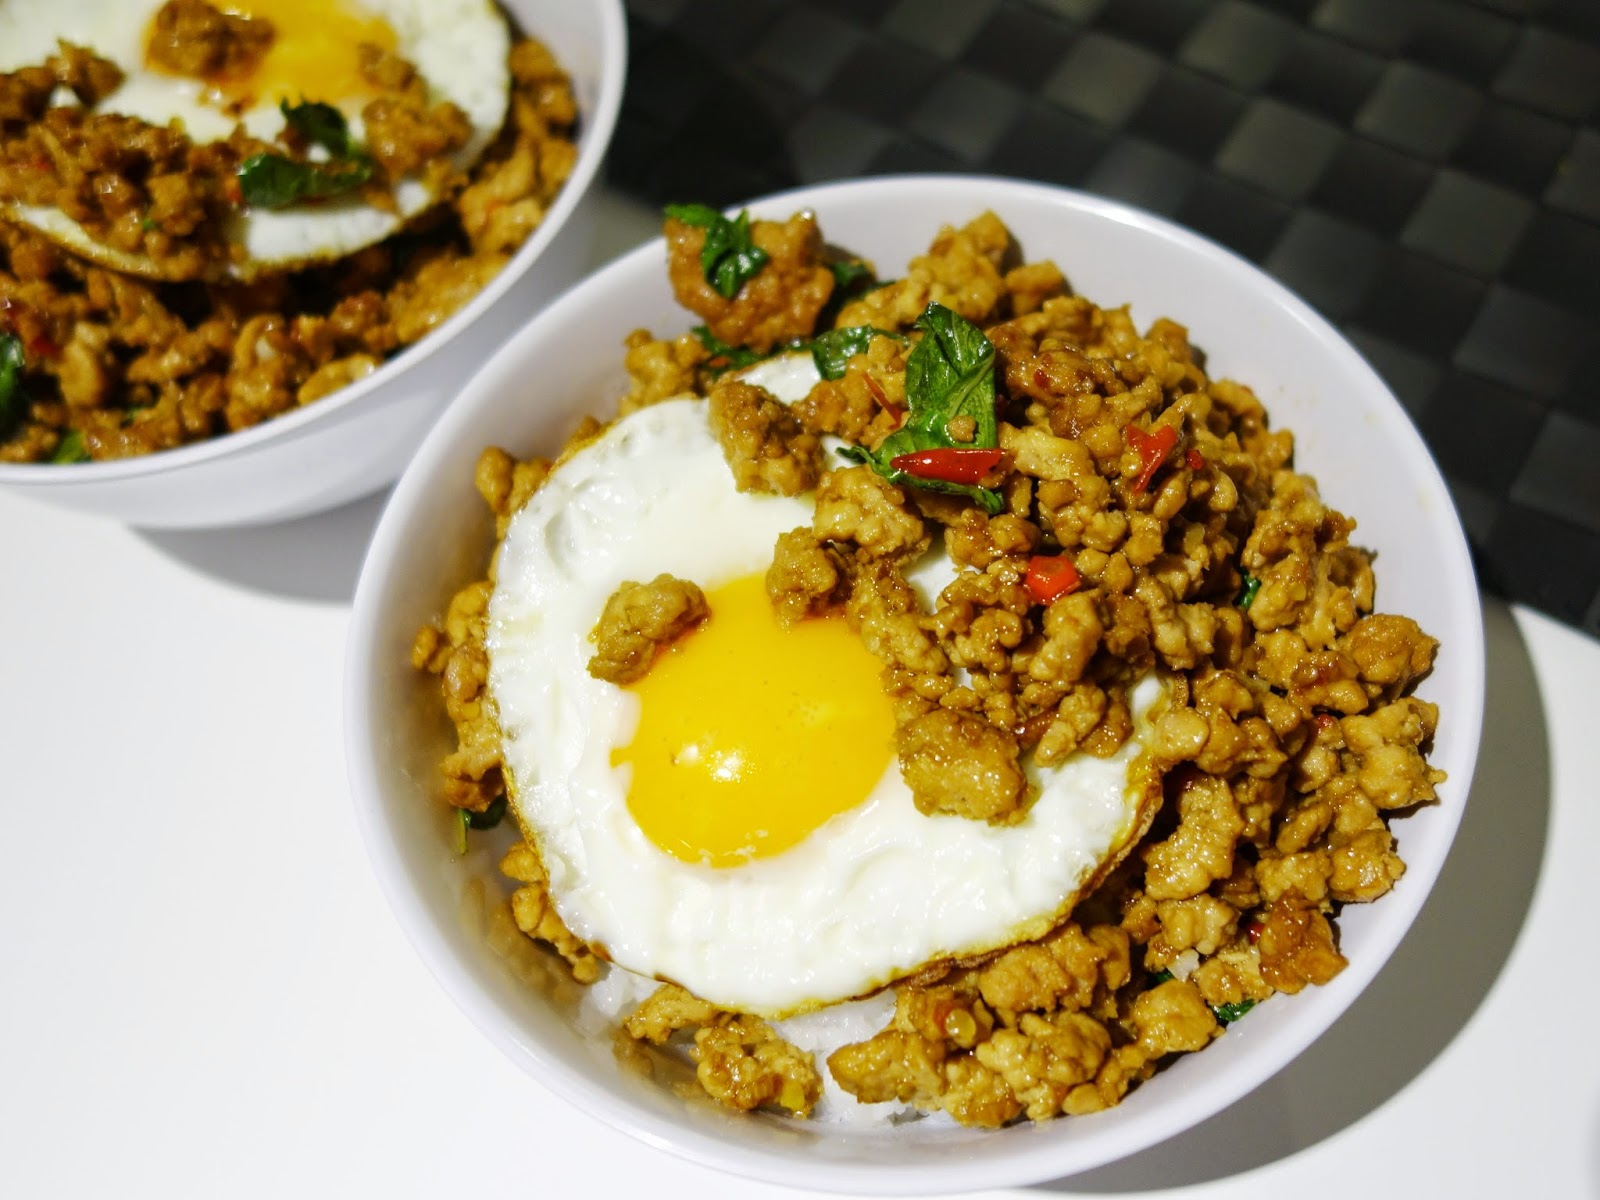 Pinkypiggu stir fry minced pork with thai basil recipe included stir fry minced pork with thai basil recipe included forumfinder Choice Image